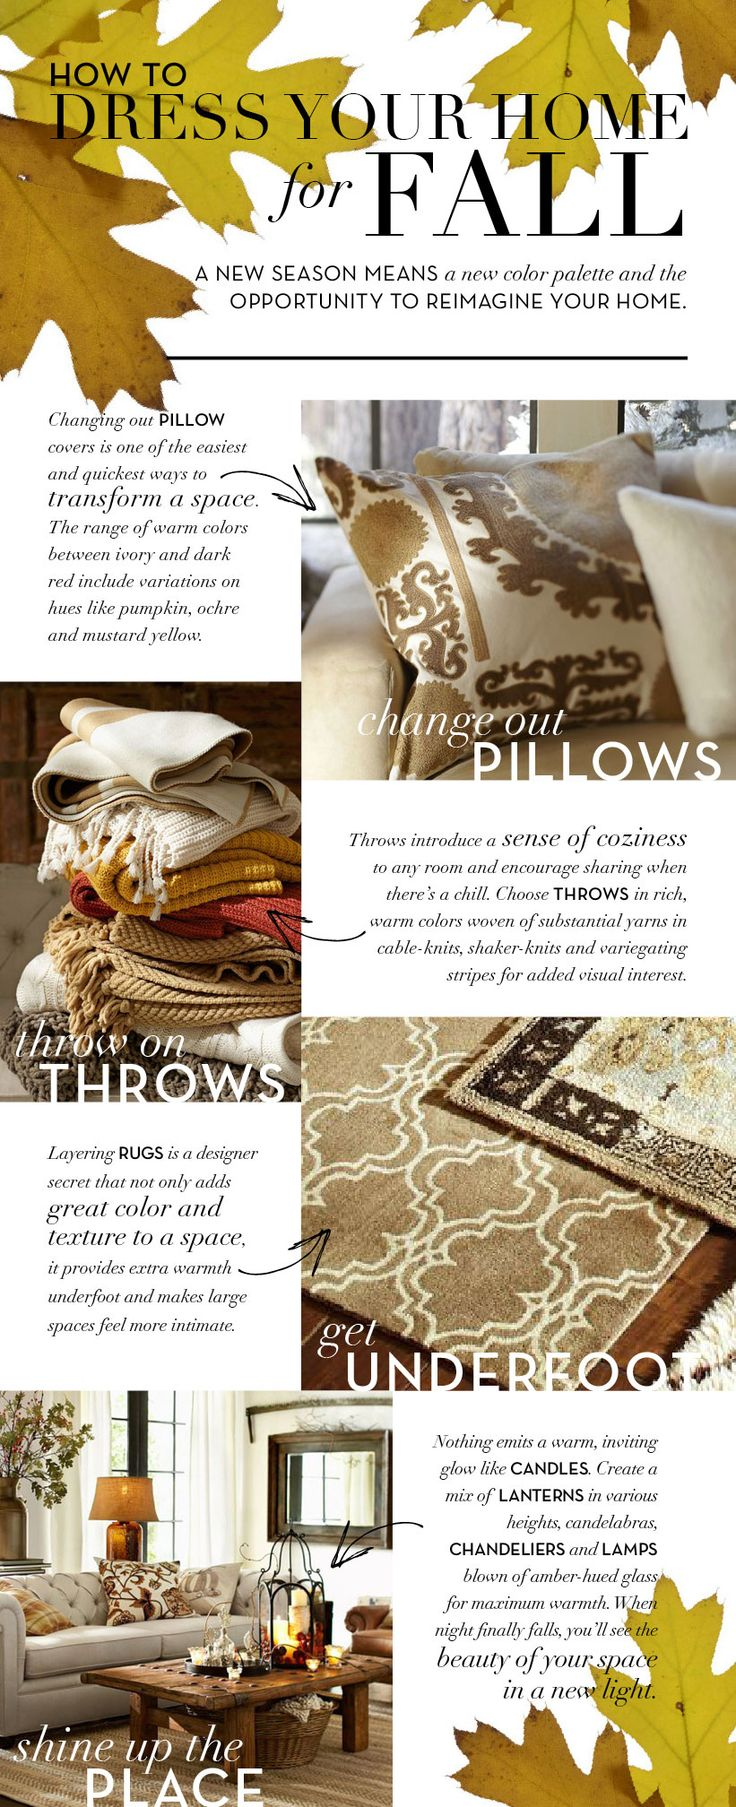 Dress Your Home For Fall | Pottery Barn